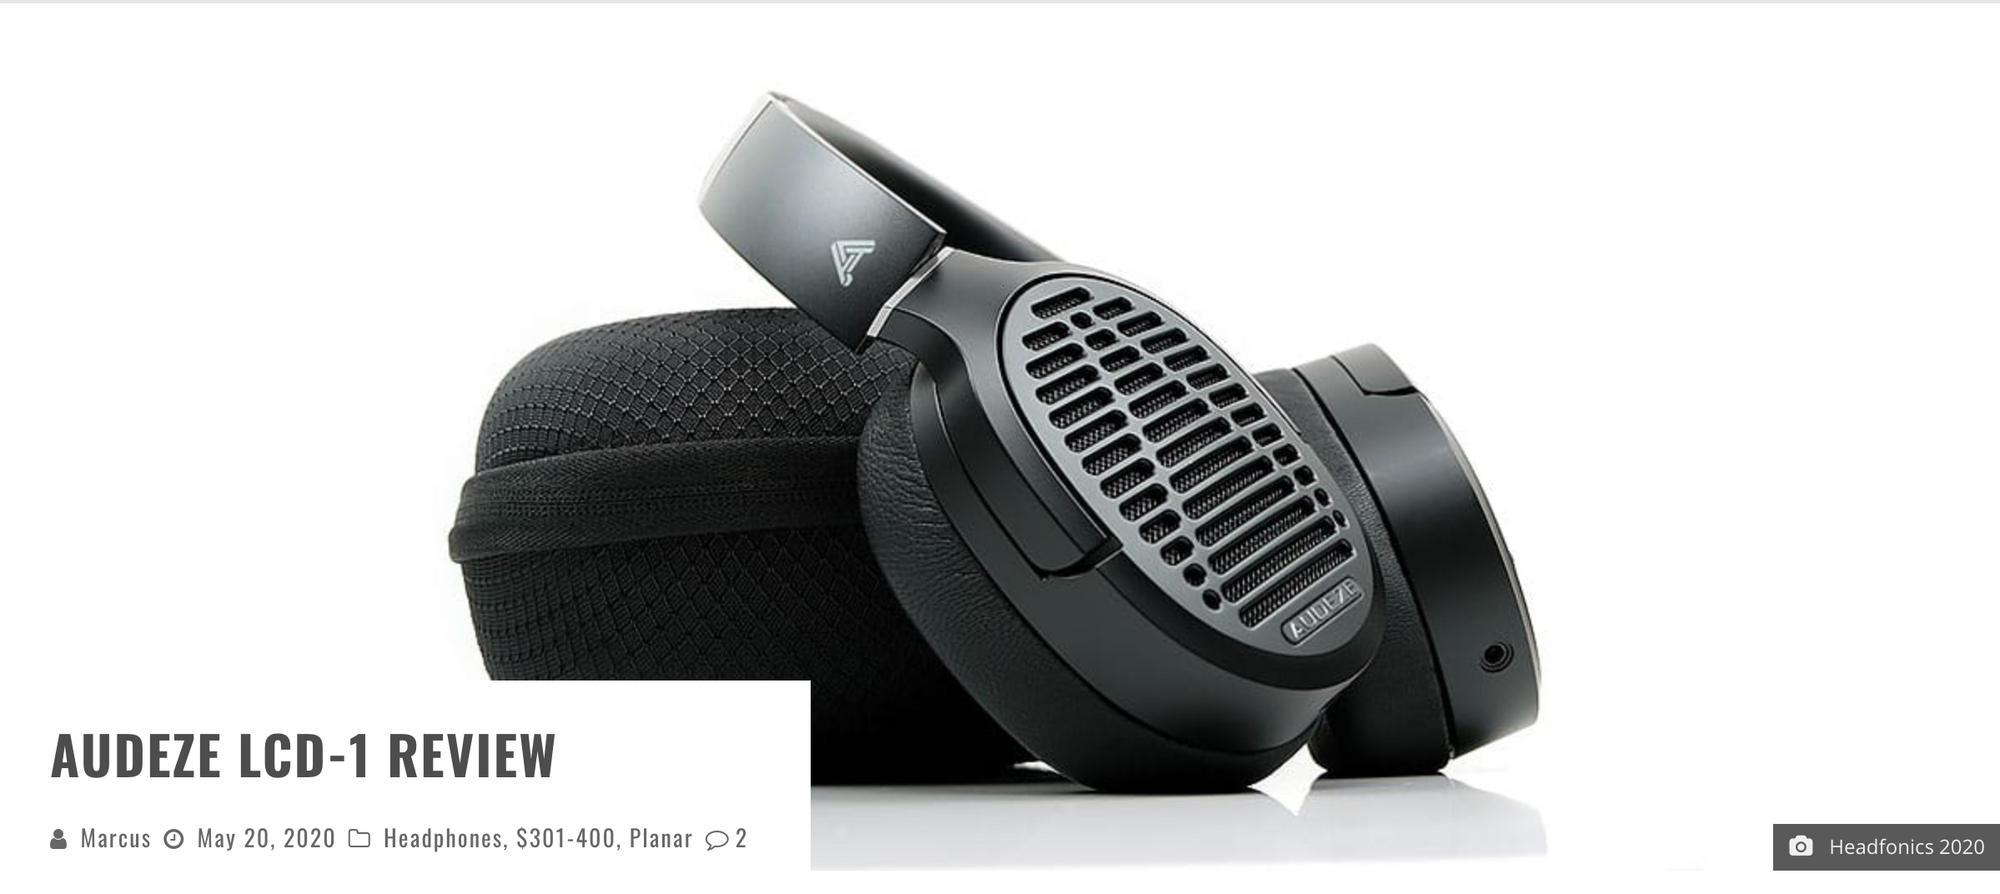 Headfonics Reviews the Audeze LCD-1!